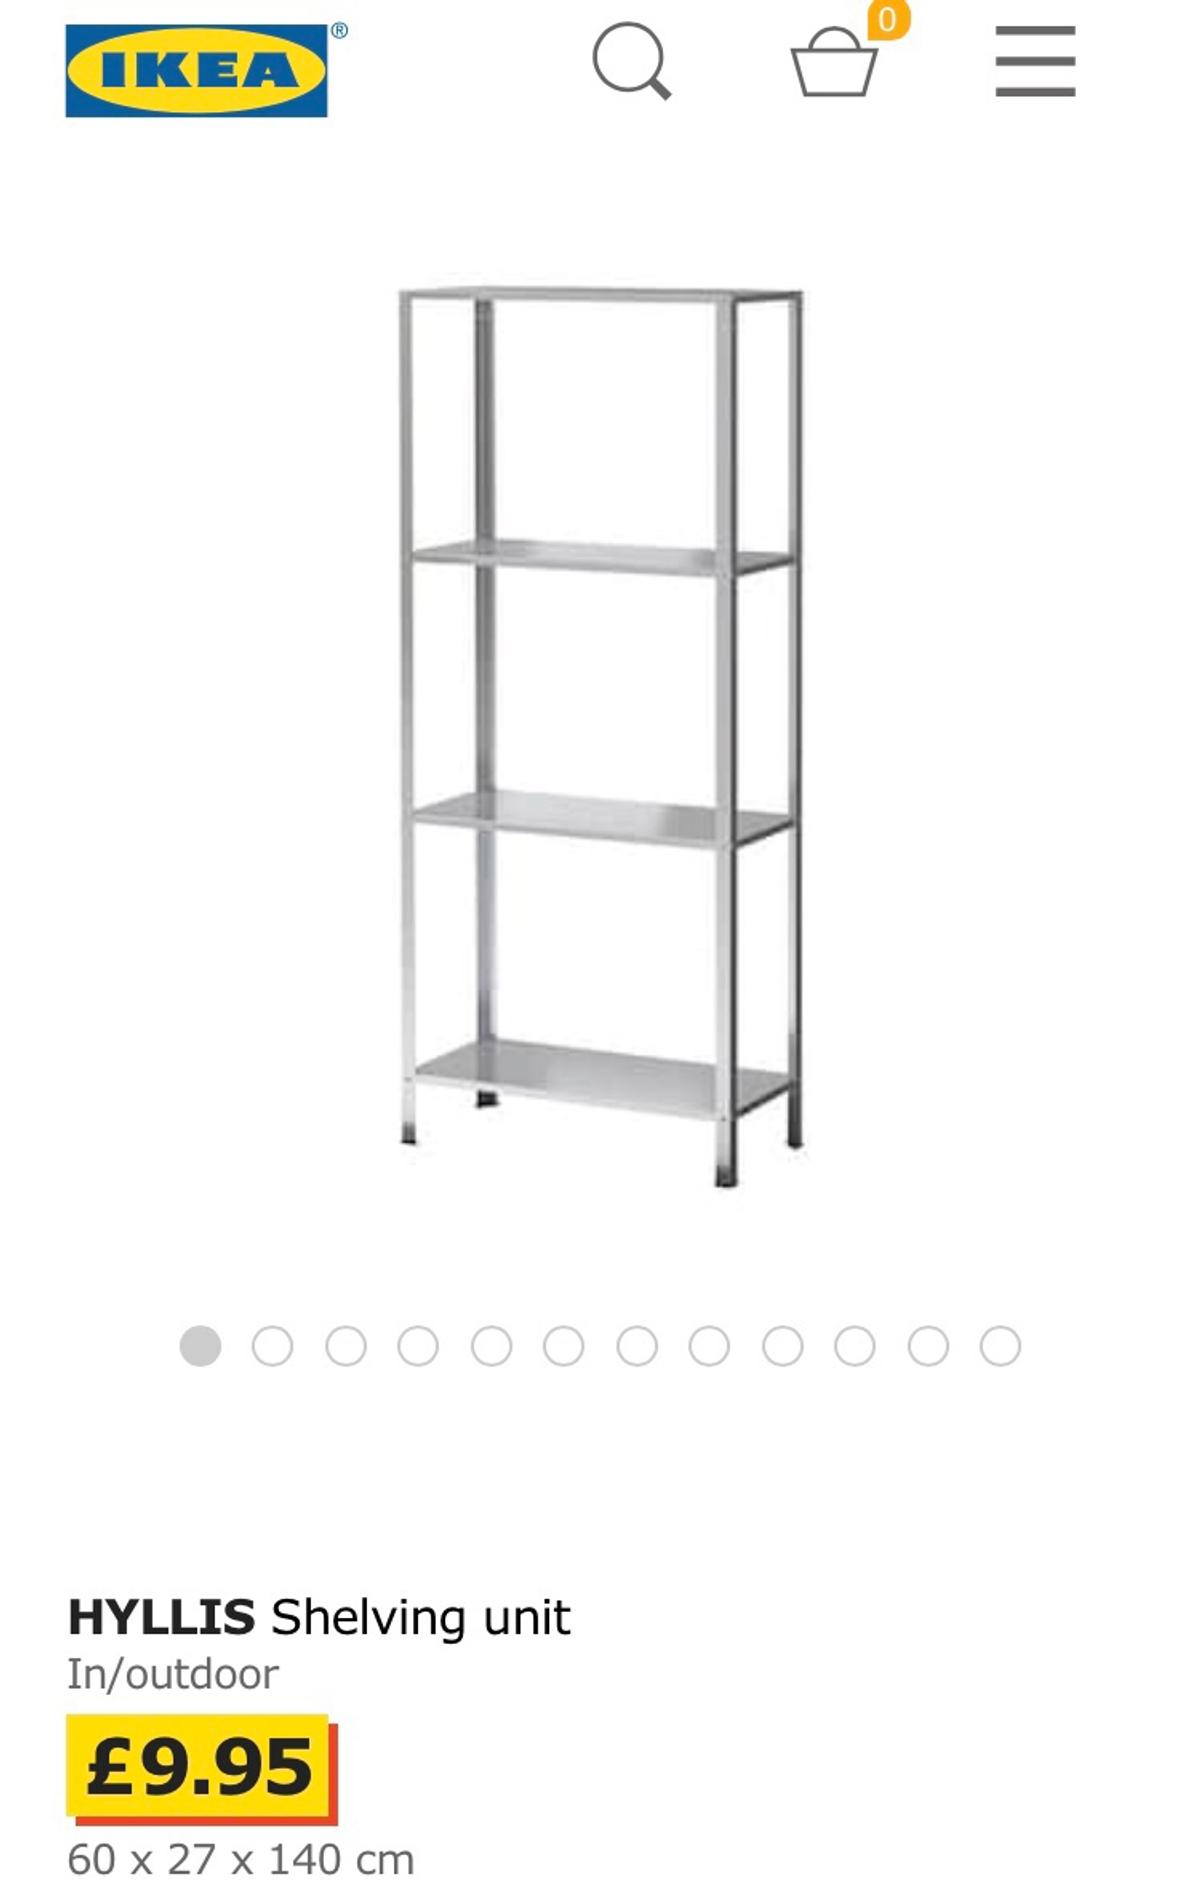 Tremendous Ikea Hyllis Shelving Galvanised In Outdoor Download Free Architecture Designs Scobabritishbridgeorg